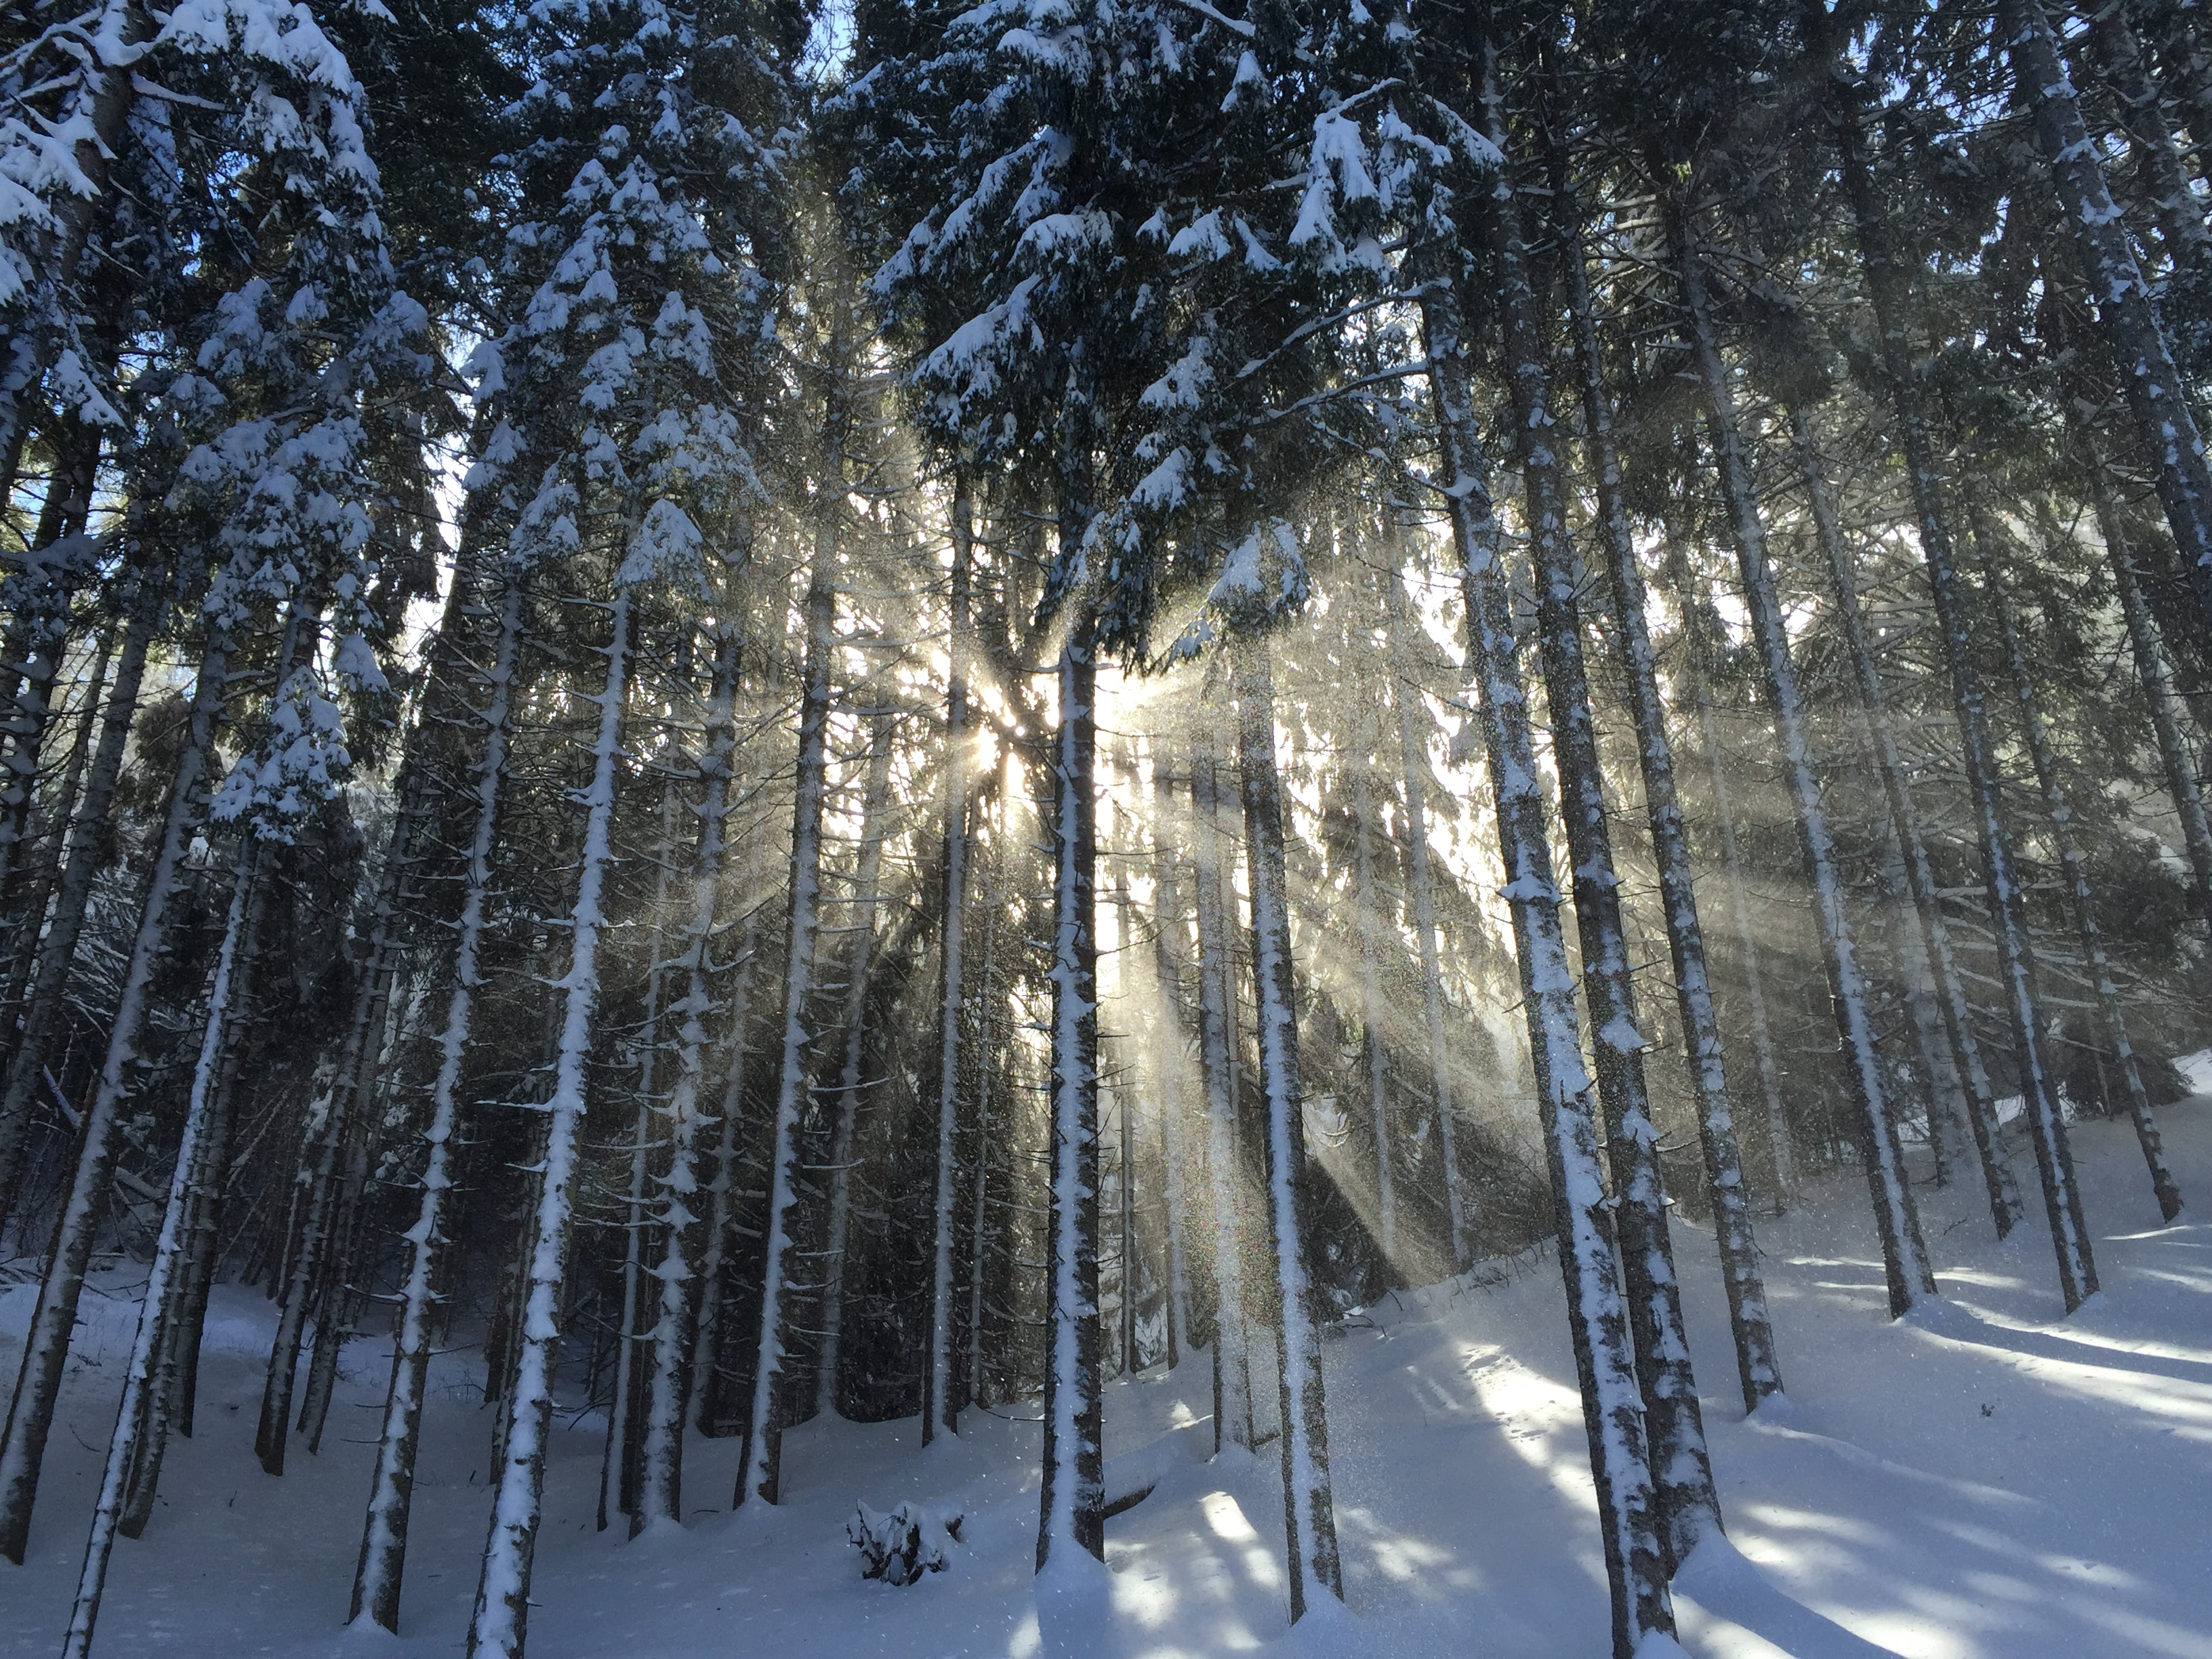 Sun coming through snow capped trees and a snow covered ground